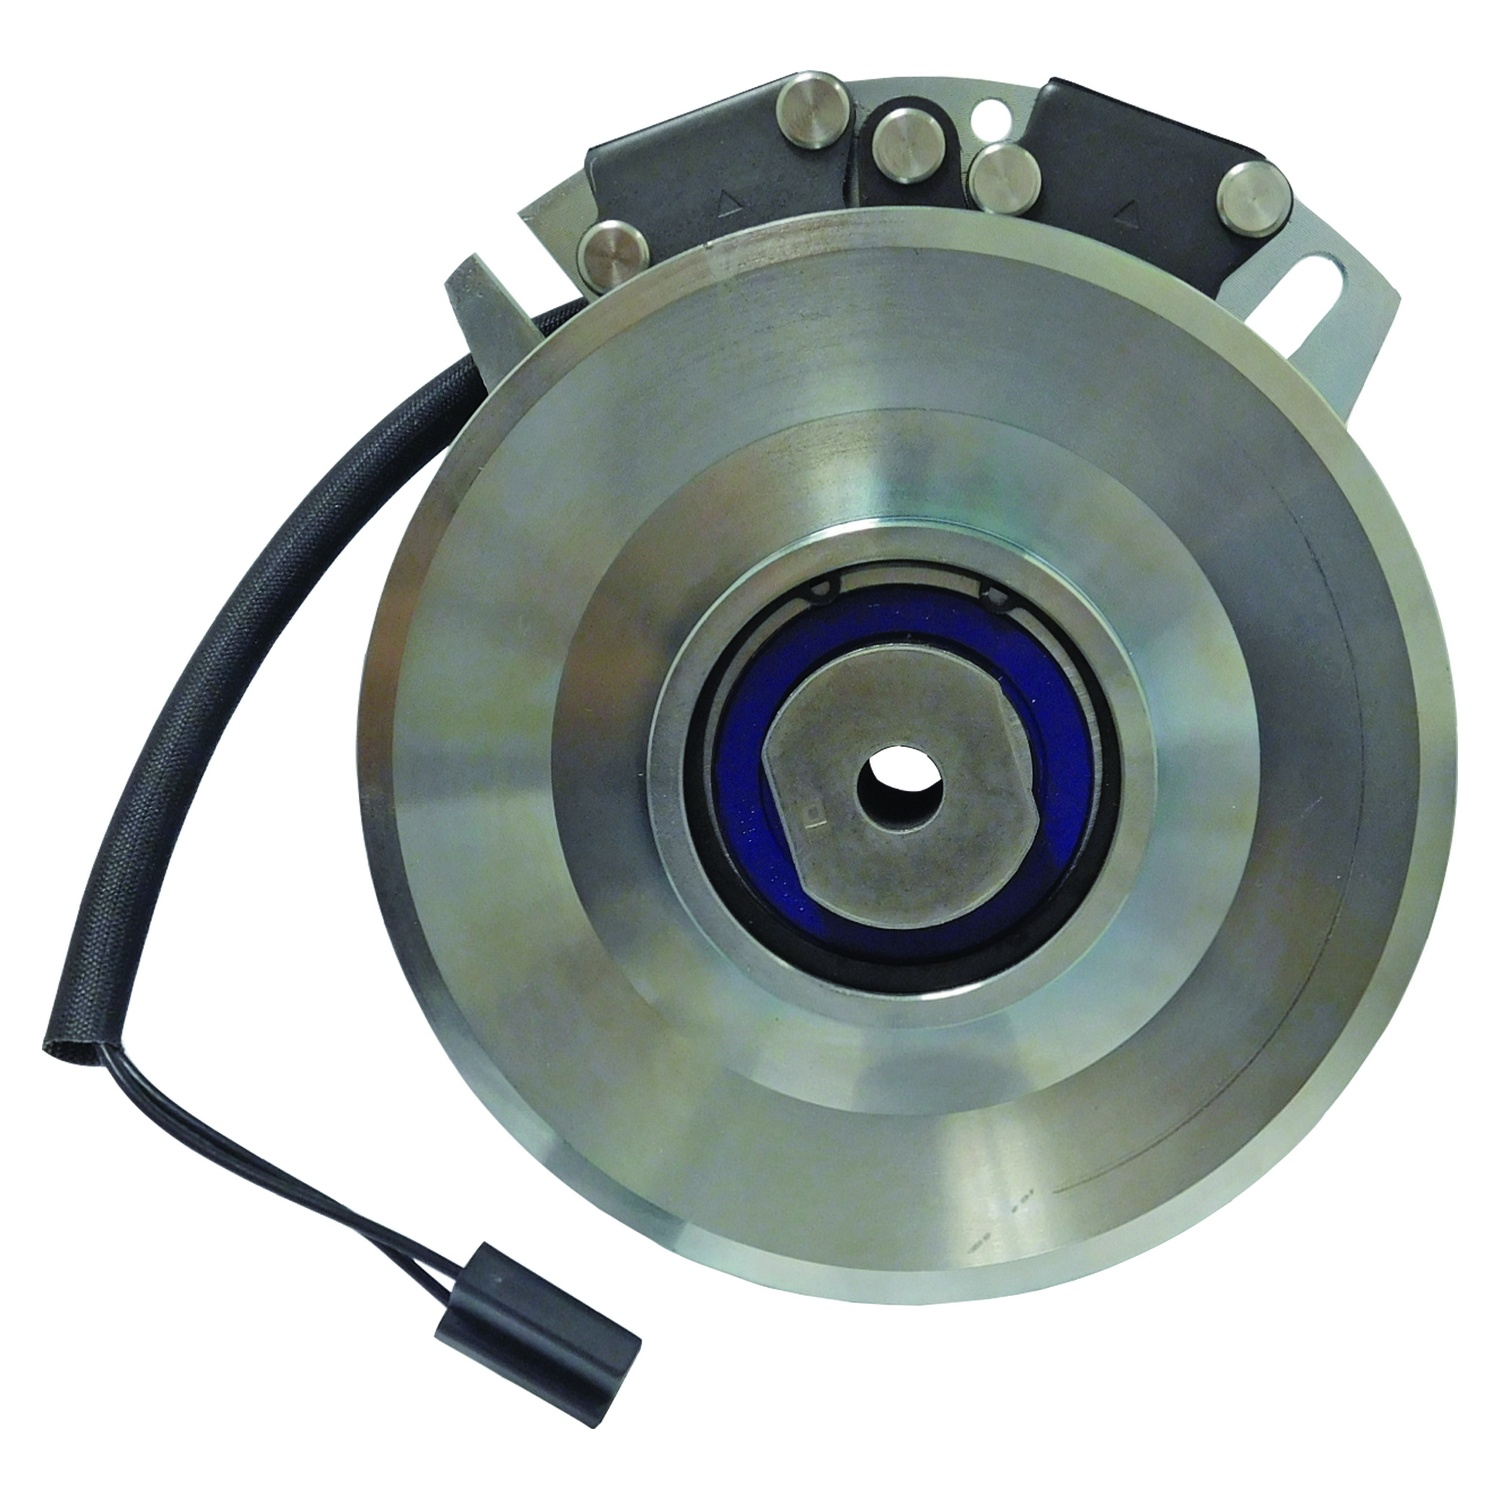 New HD PTO Clutch For Sears Craftsman 105804, 539105804, Dixon 105804, 539118768, 12035, 105854, 539105804 Upgraded